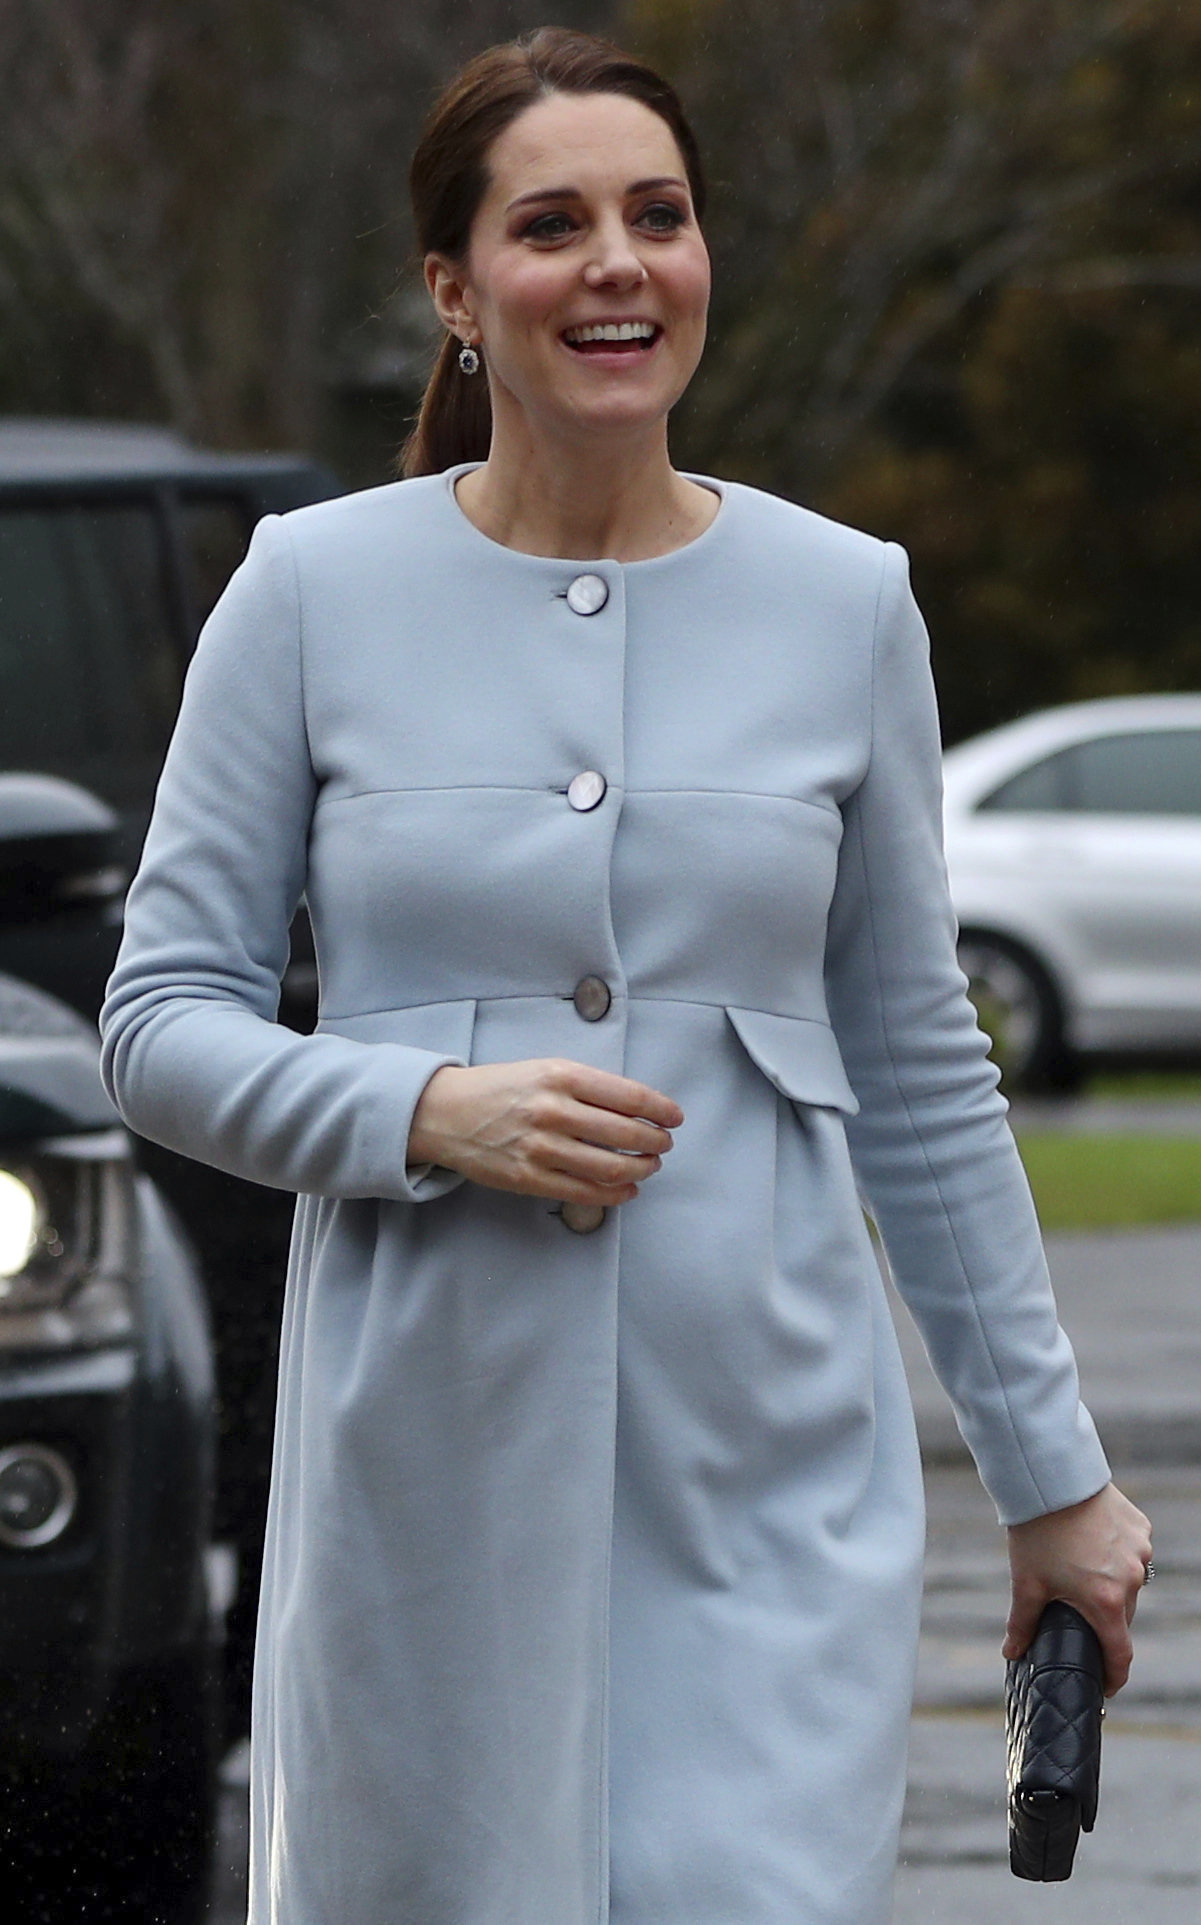 "<div class=""meta image-caption""><div class=""origin-logo origin-image none""><span>none</span></div><span class=""caption-text"">Britain's Kate, Duchess of Cambridge, arrives to meet patients and staff at the Mother and Baby unit at the Bethlem Royal Hospital in south London, Wednesday, Jan. 24, 2018. (Hannah McKay/Pool Photo via AP)</span></div>"